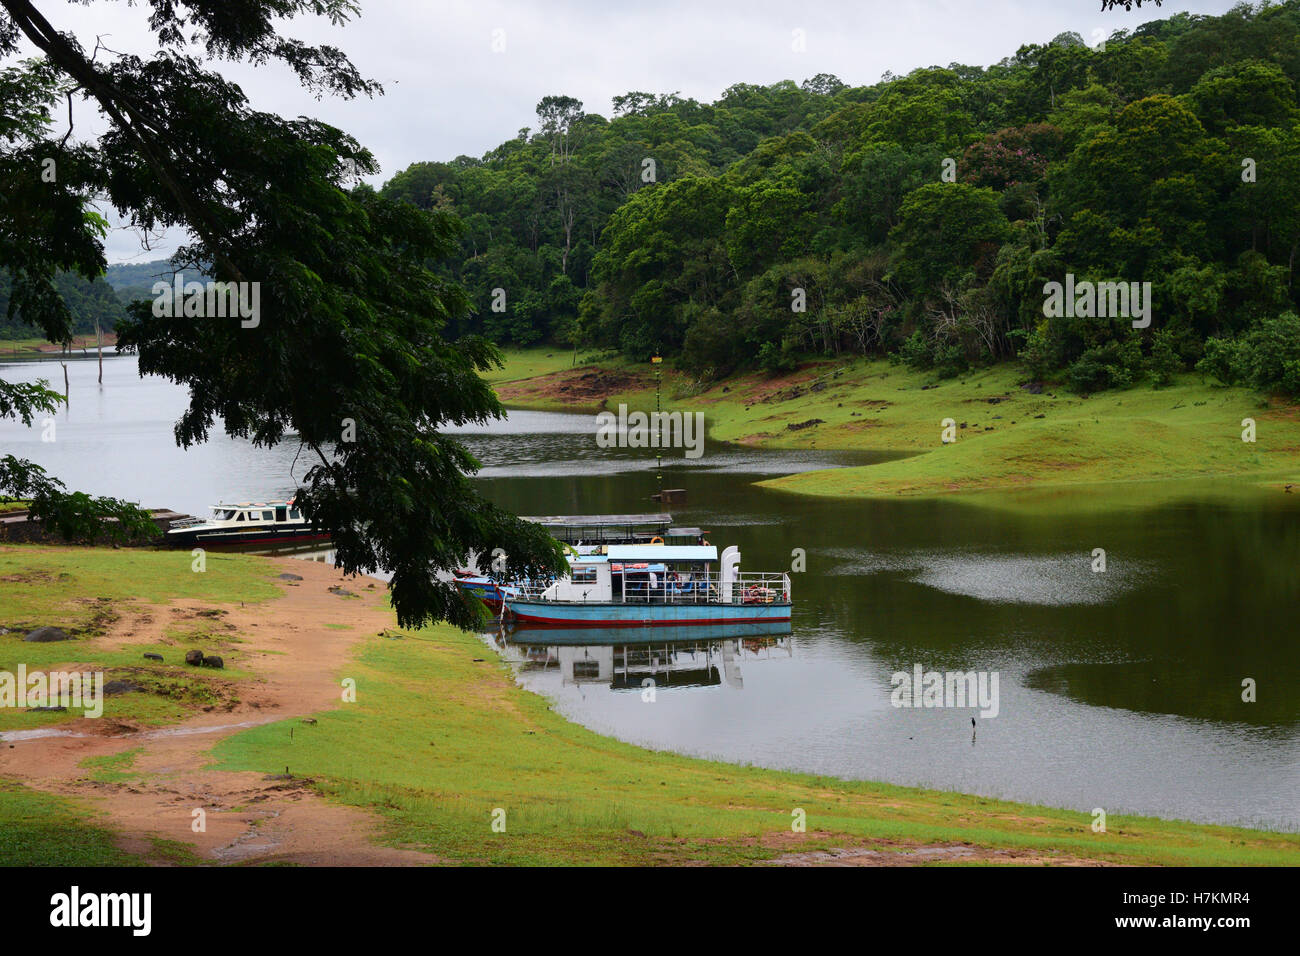 Thekkady Tourist attraction in Kerala India Thekkady Lake Boating view at Periyar National Park western ghats forests - Stock Image